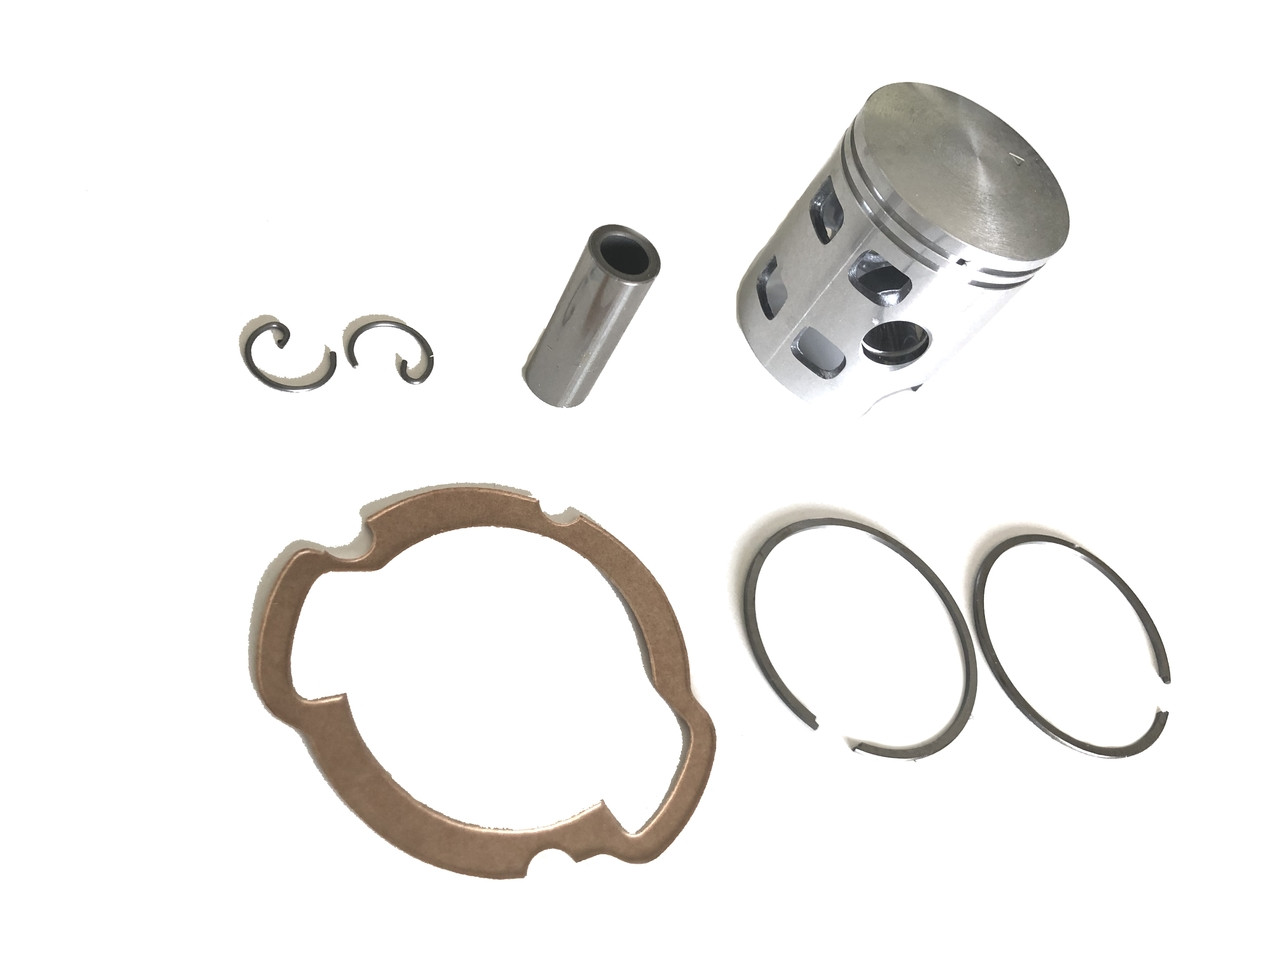 Piaggio Vespa Kinetic 43mm DR Cylinder Kit - 12mm Wrist Pin